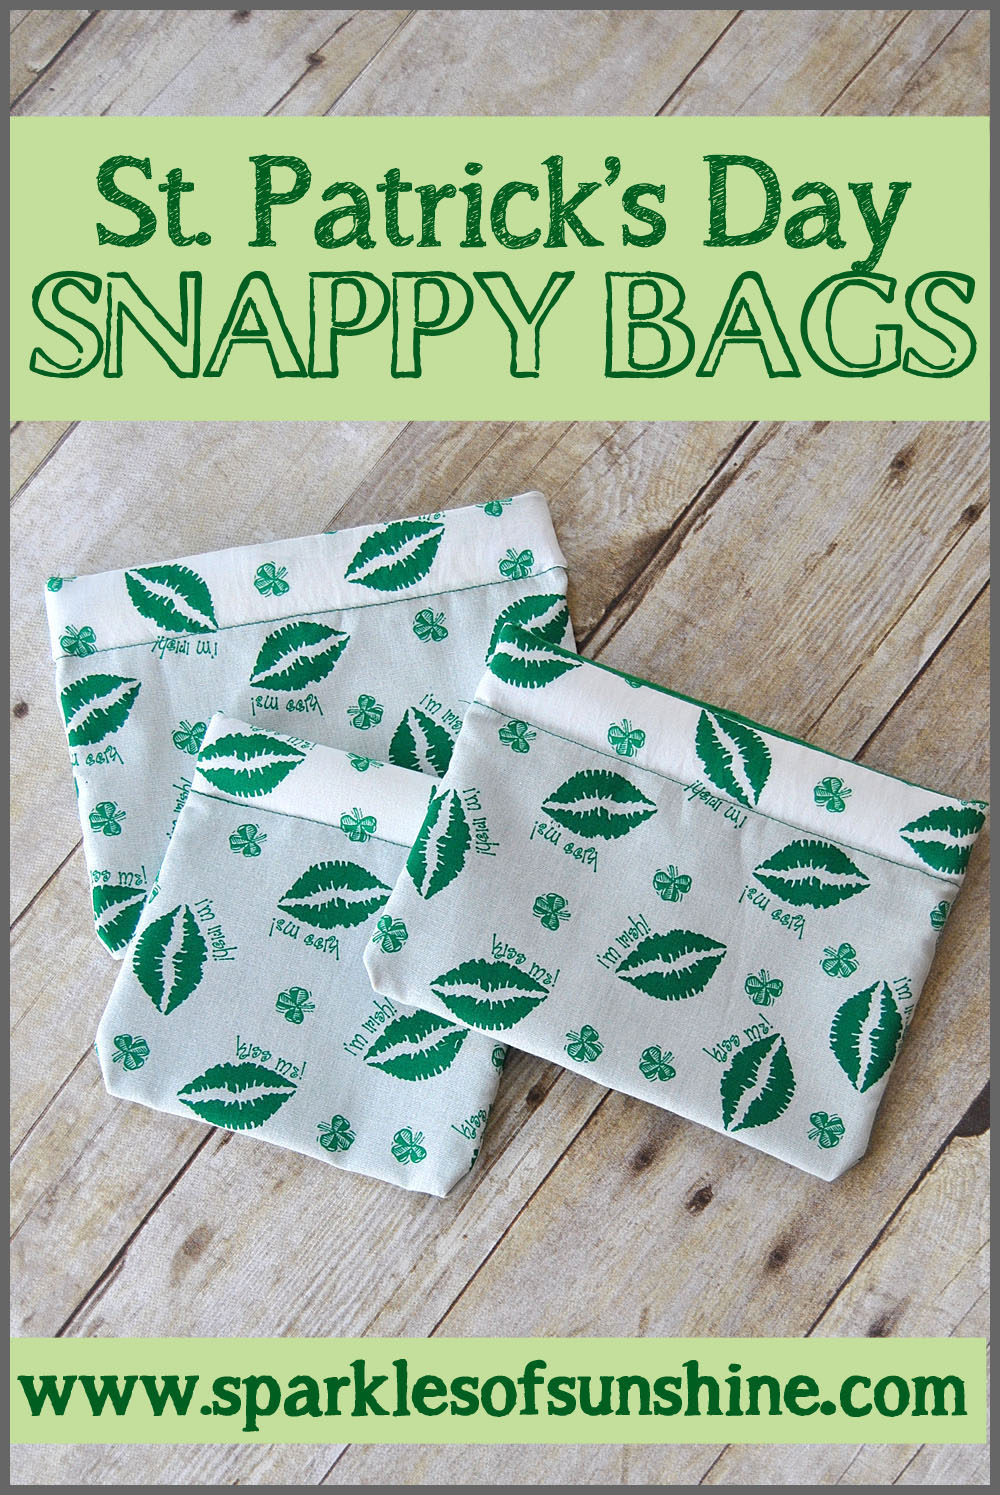 St. Patrick's Day Snappy Bags | Easy St Patrick's Day Decorations | Sewing Projects | Featured